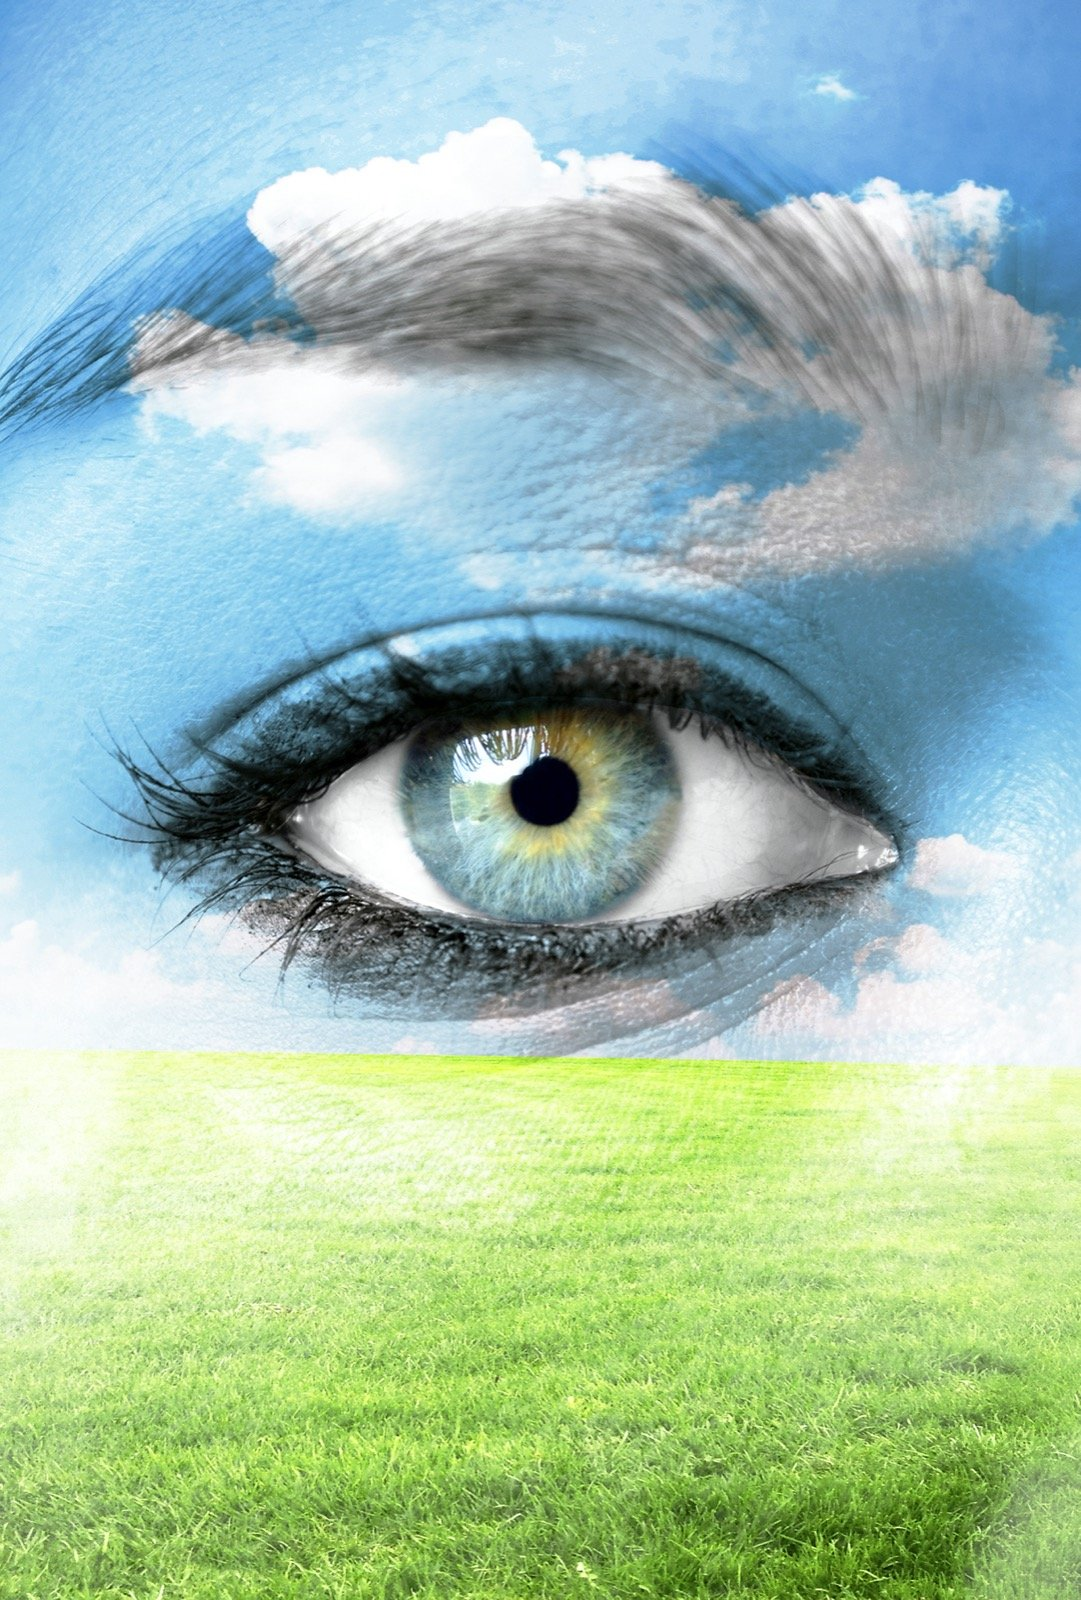 Close-up of eye seeing nature with green grass and a blue sky